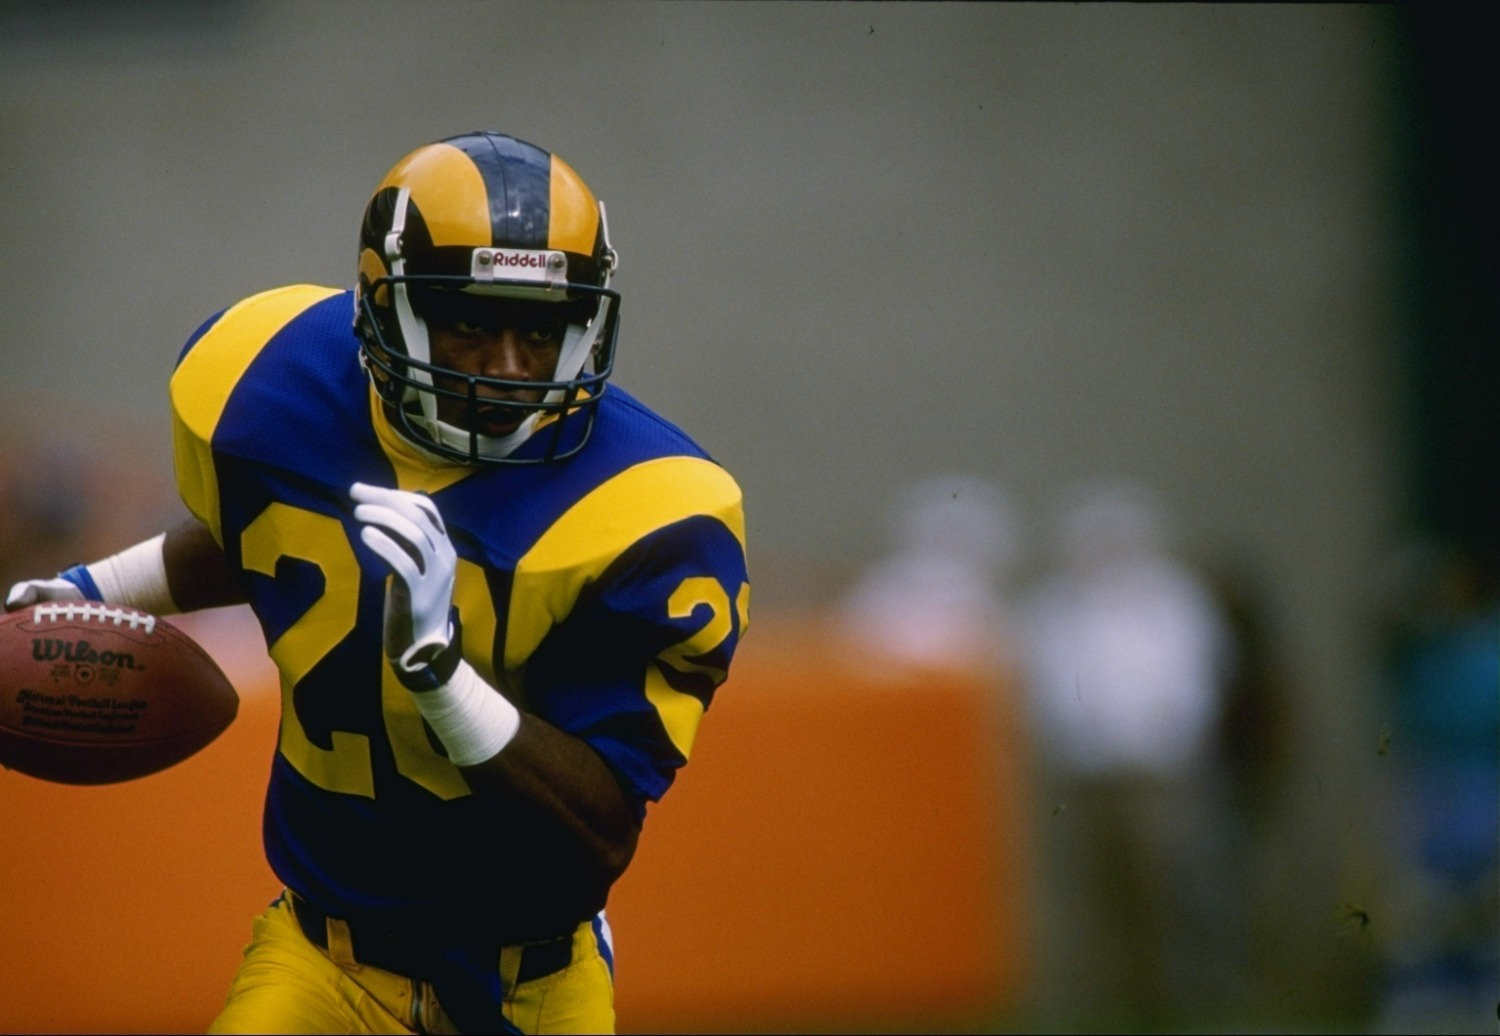 Former Rams CB Darryl Henley got an extra 21 years in prison for plotting to murder a judge and a witness.